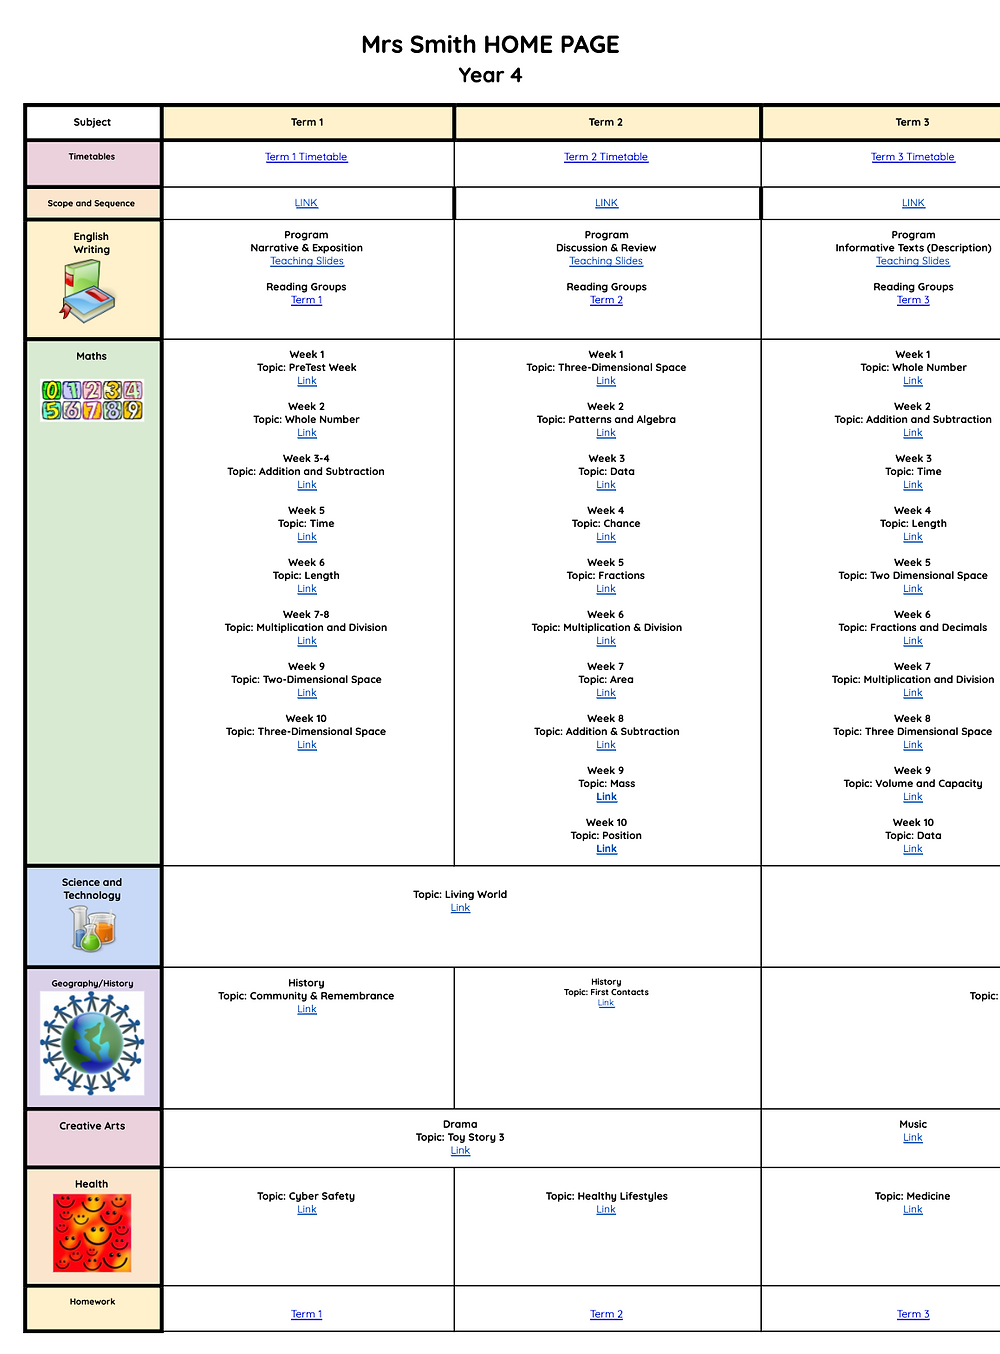 Example of a Home Page Google doc